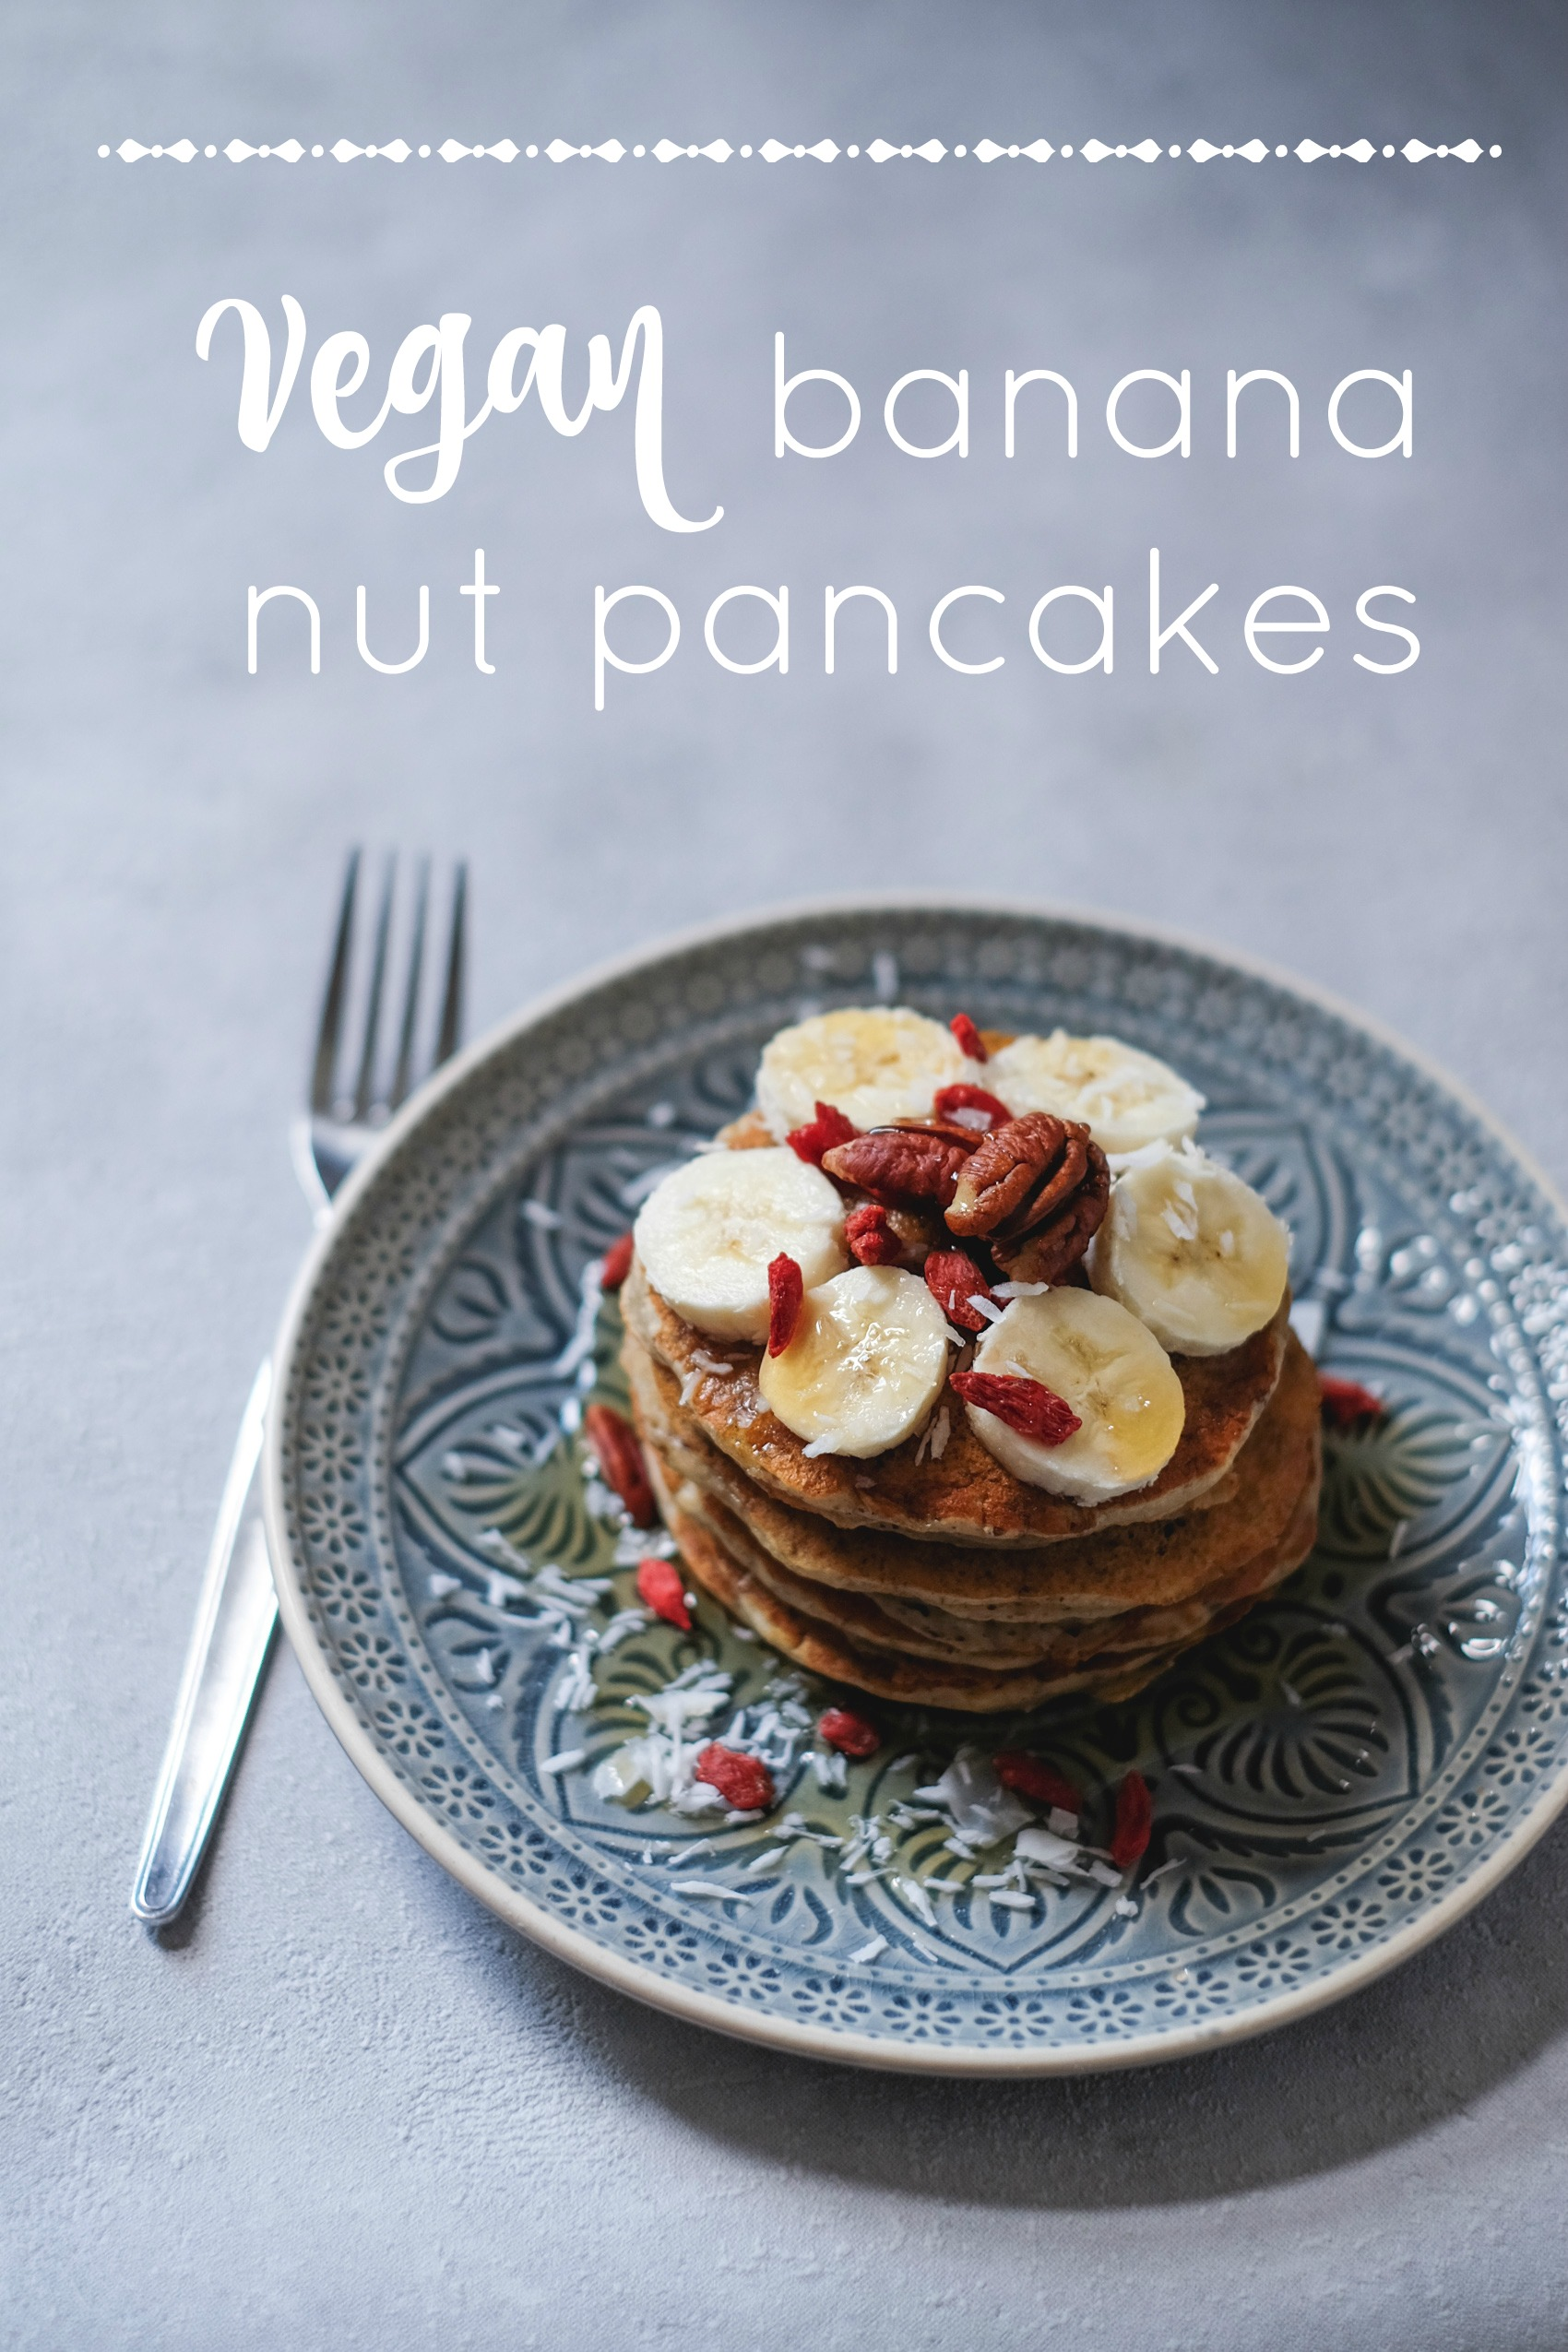 vegan banana nut pancakes - by heylilahey